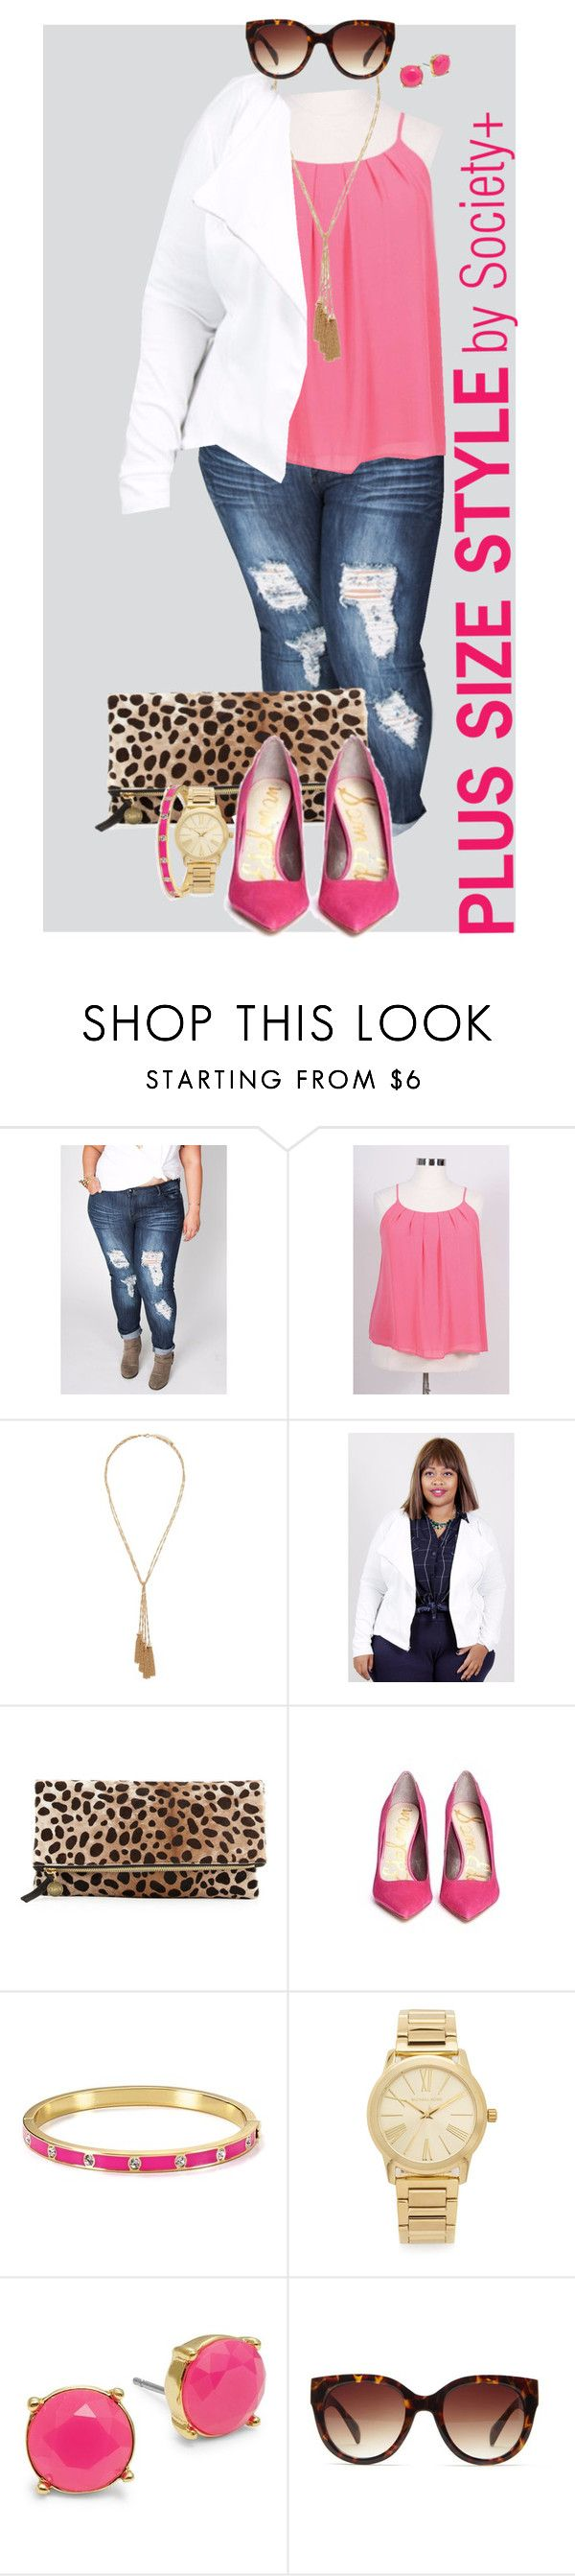 """""""Plus Size Flowy Top - Society+"""" by iamsocietyplus on Polyvore featuring Forever 21, Clare V., Sam Edelman, Kate Spade, Michael Kors, Trina Turk, plussize, plussizefashion, societyplus and iamsocietyplus"""